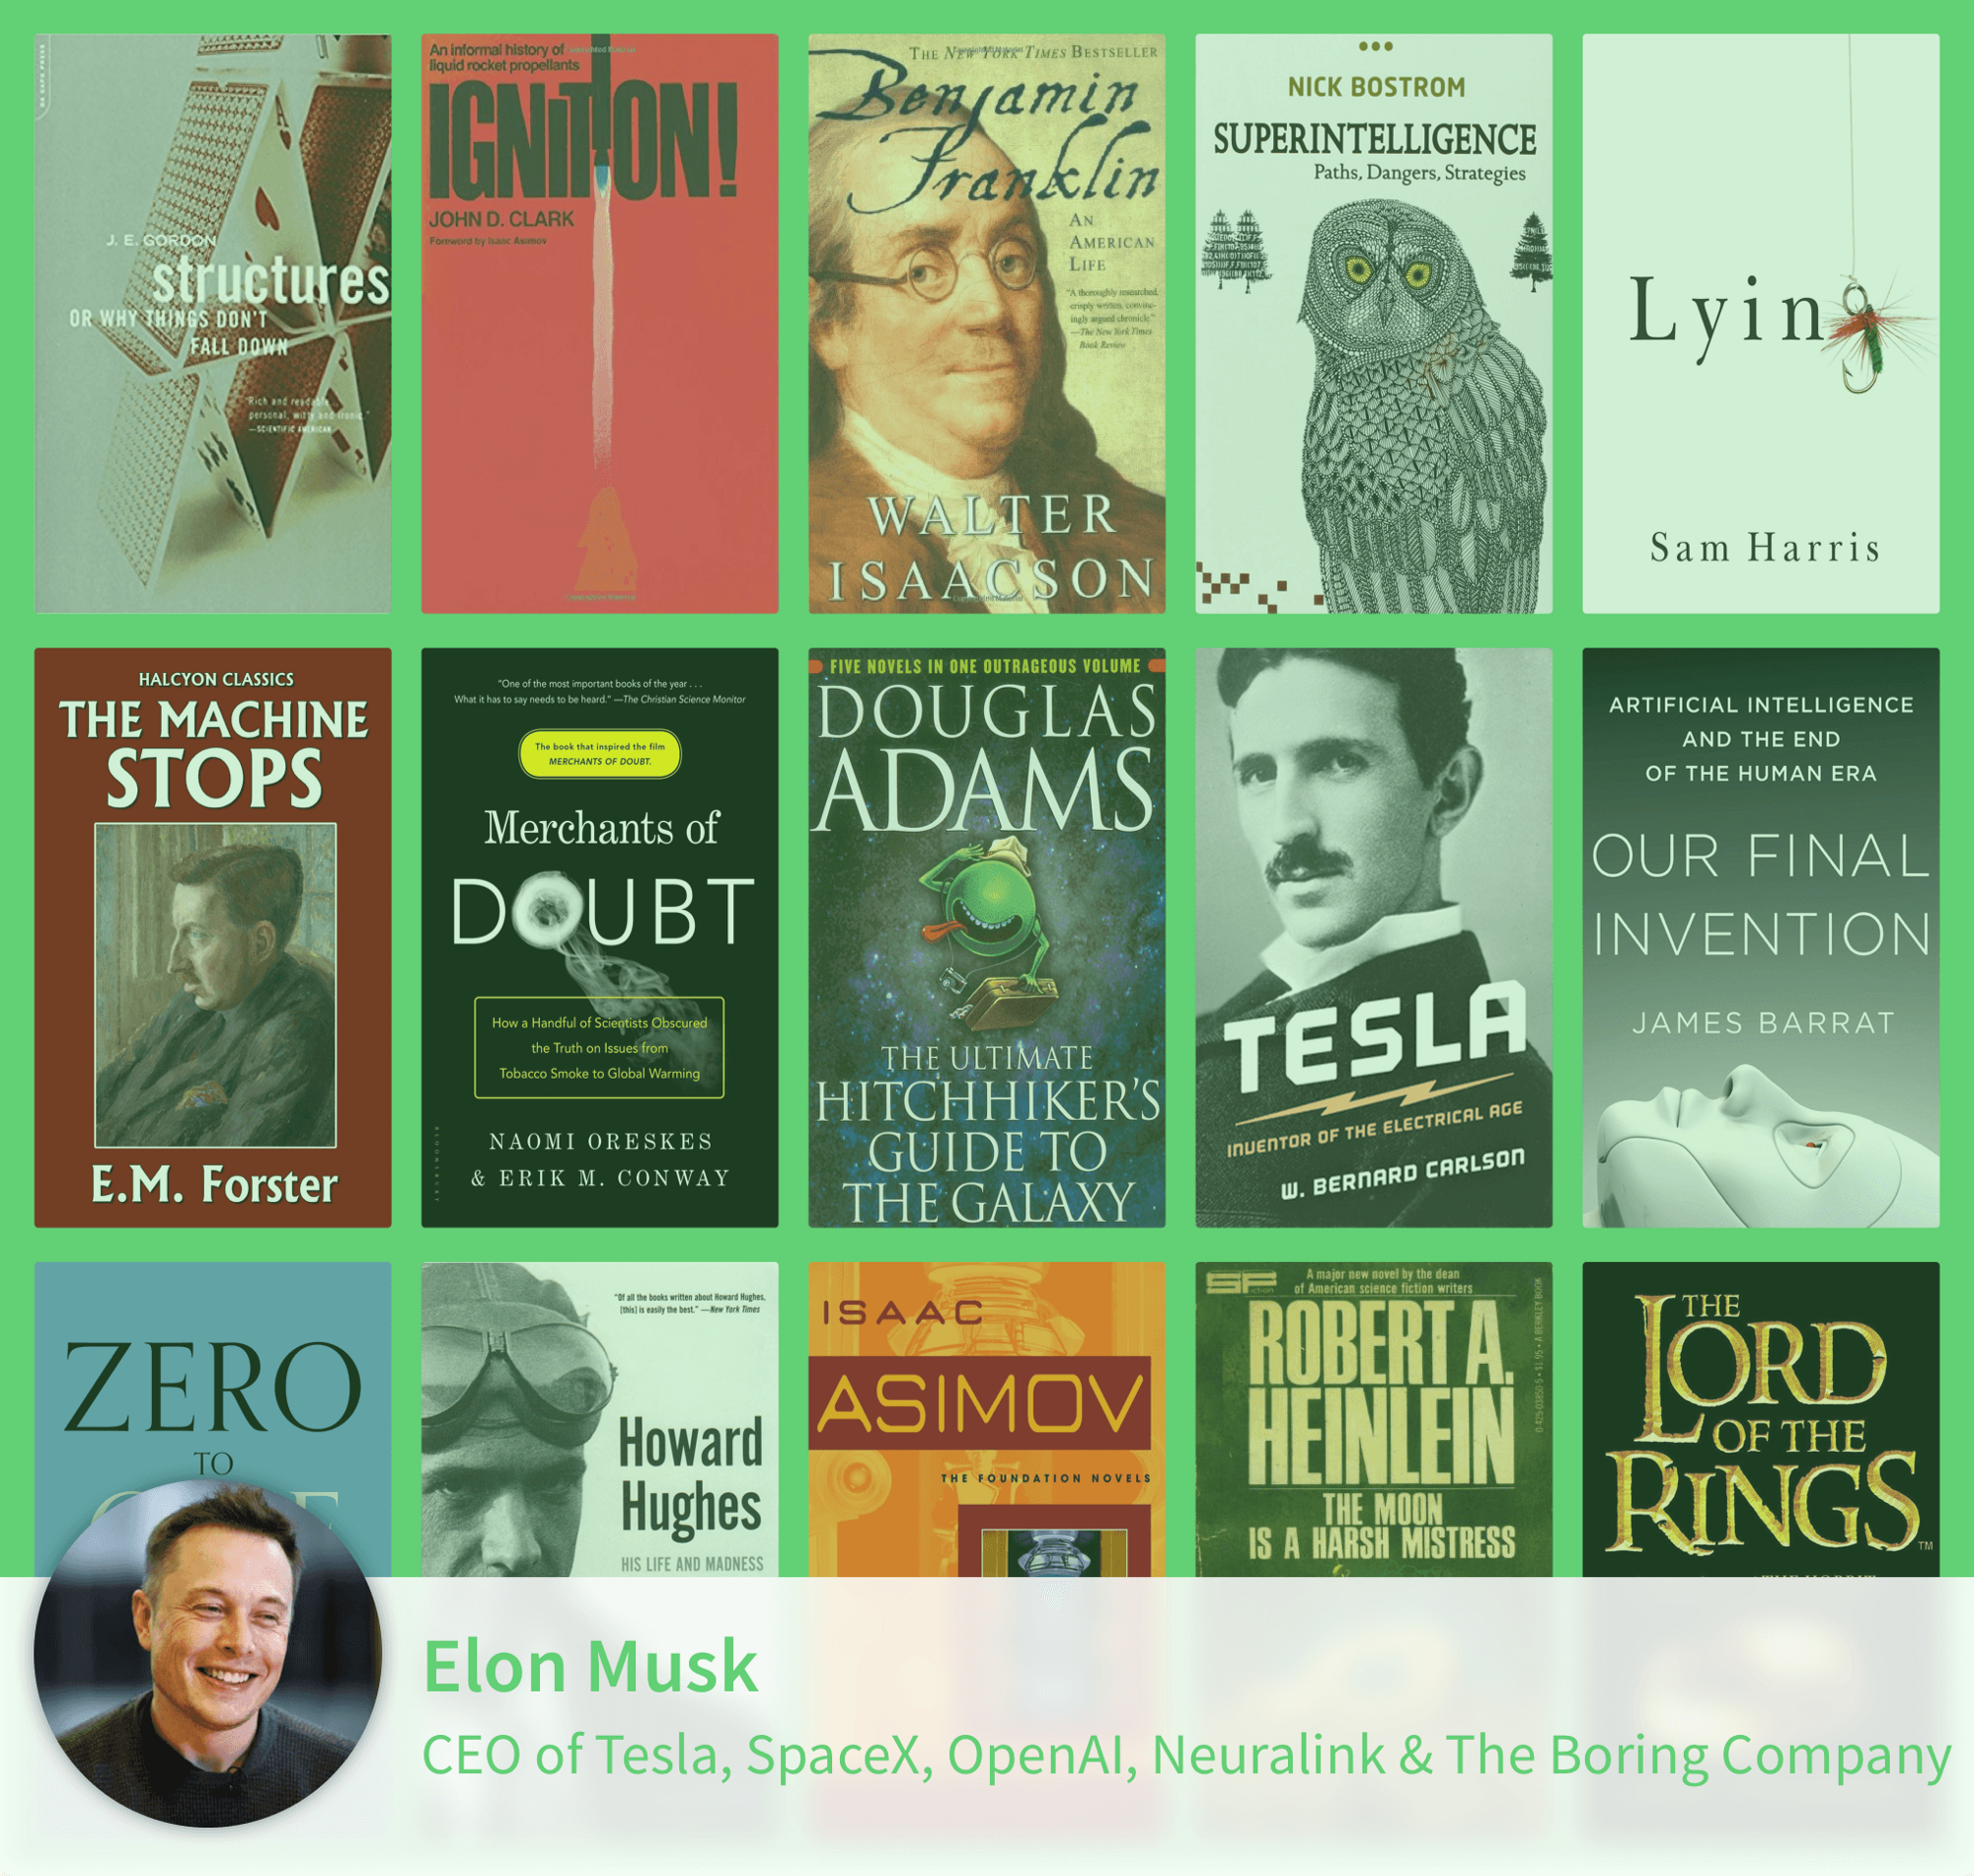 elon musk is the co founder and ceo of tesla founder and ceo of spacex co chairman of openai founder and ceo of neuralink and founder and ceo of the